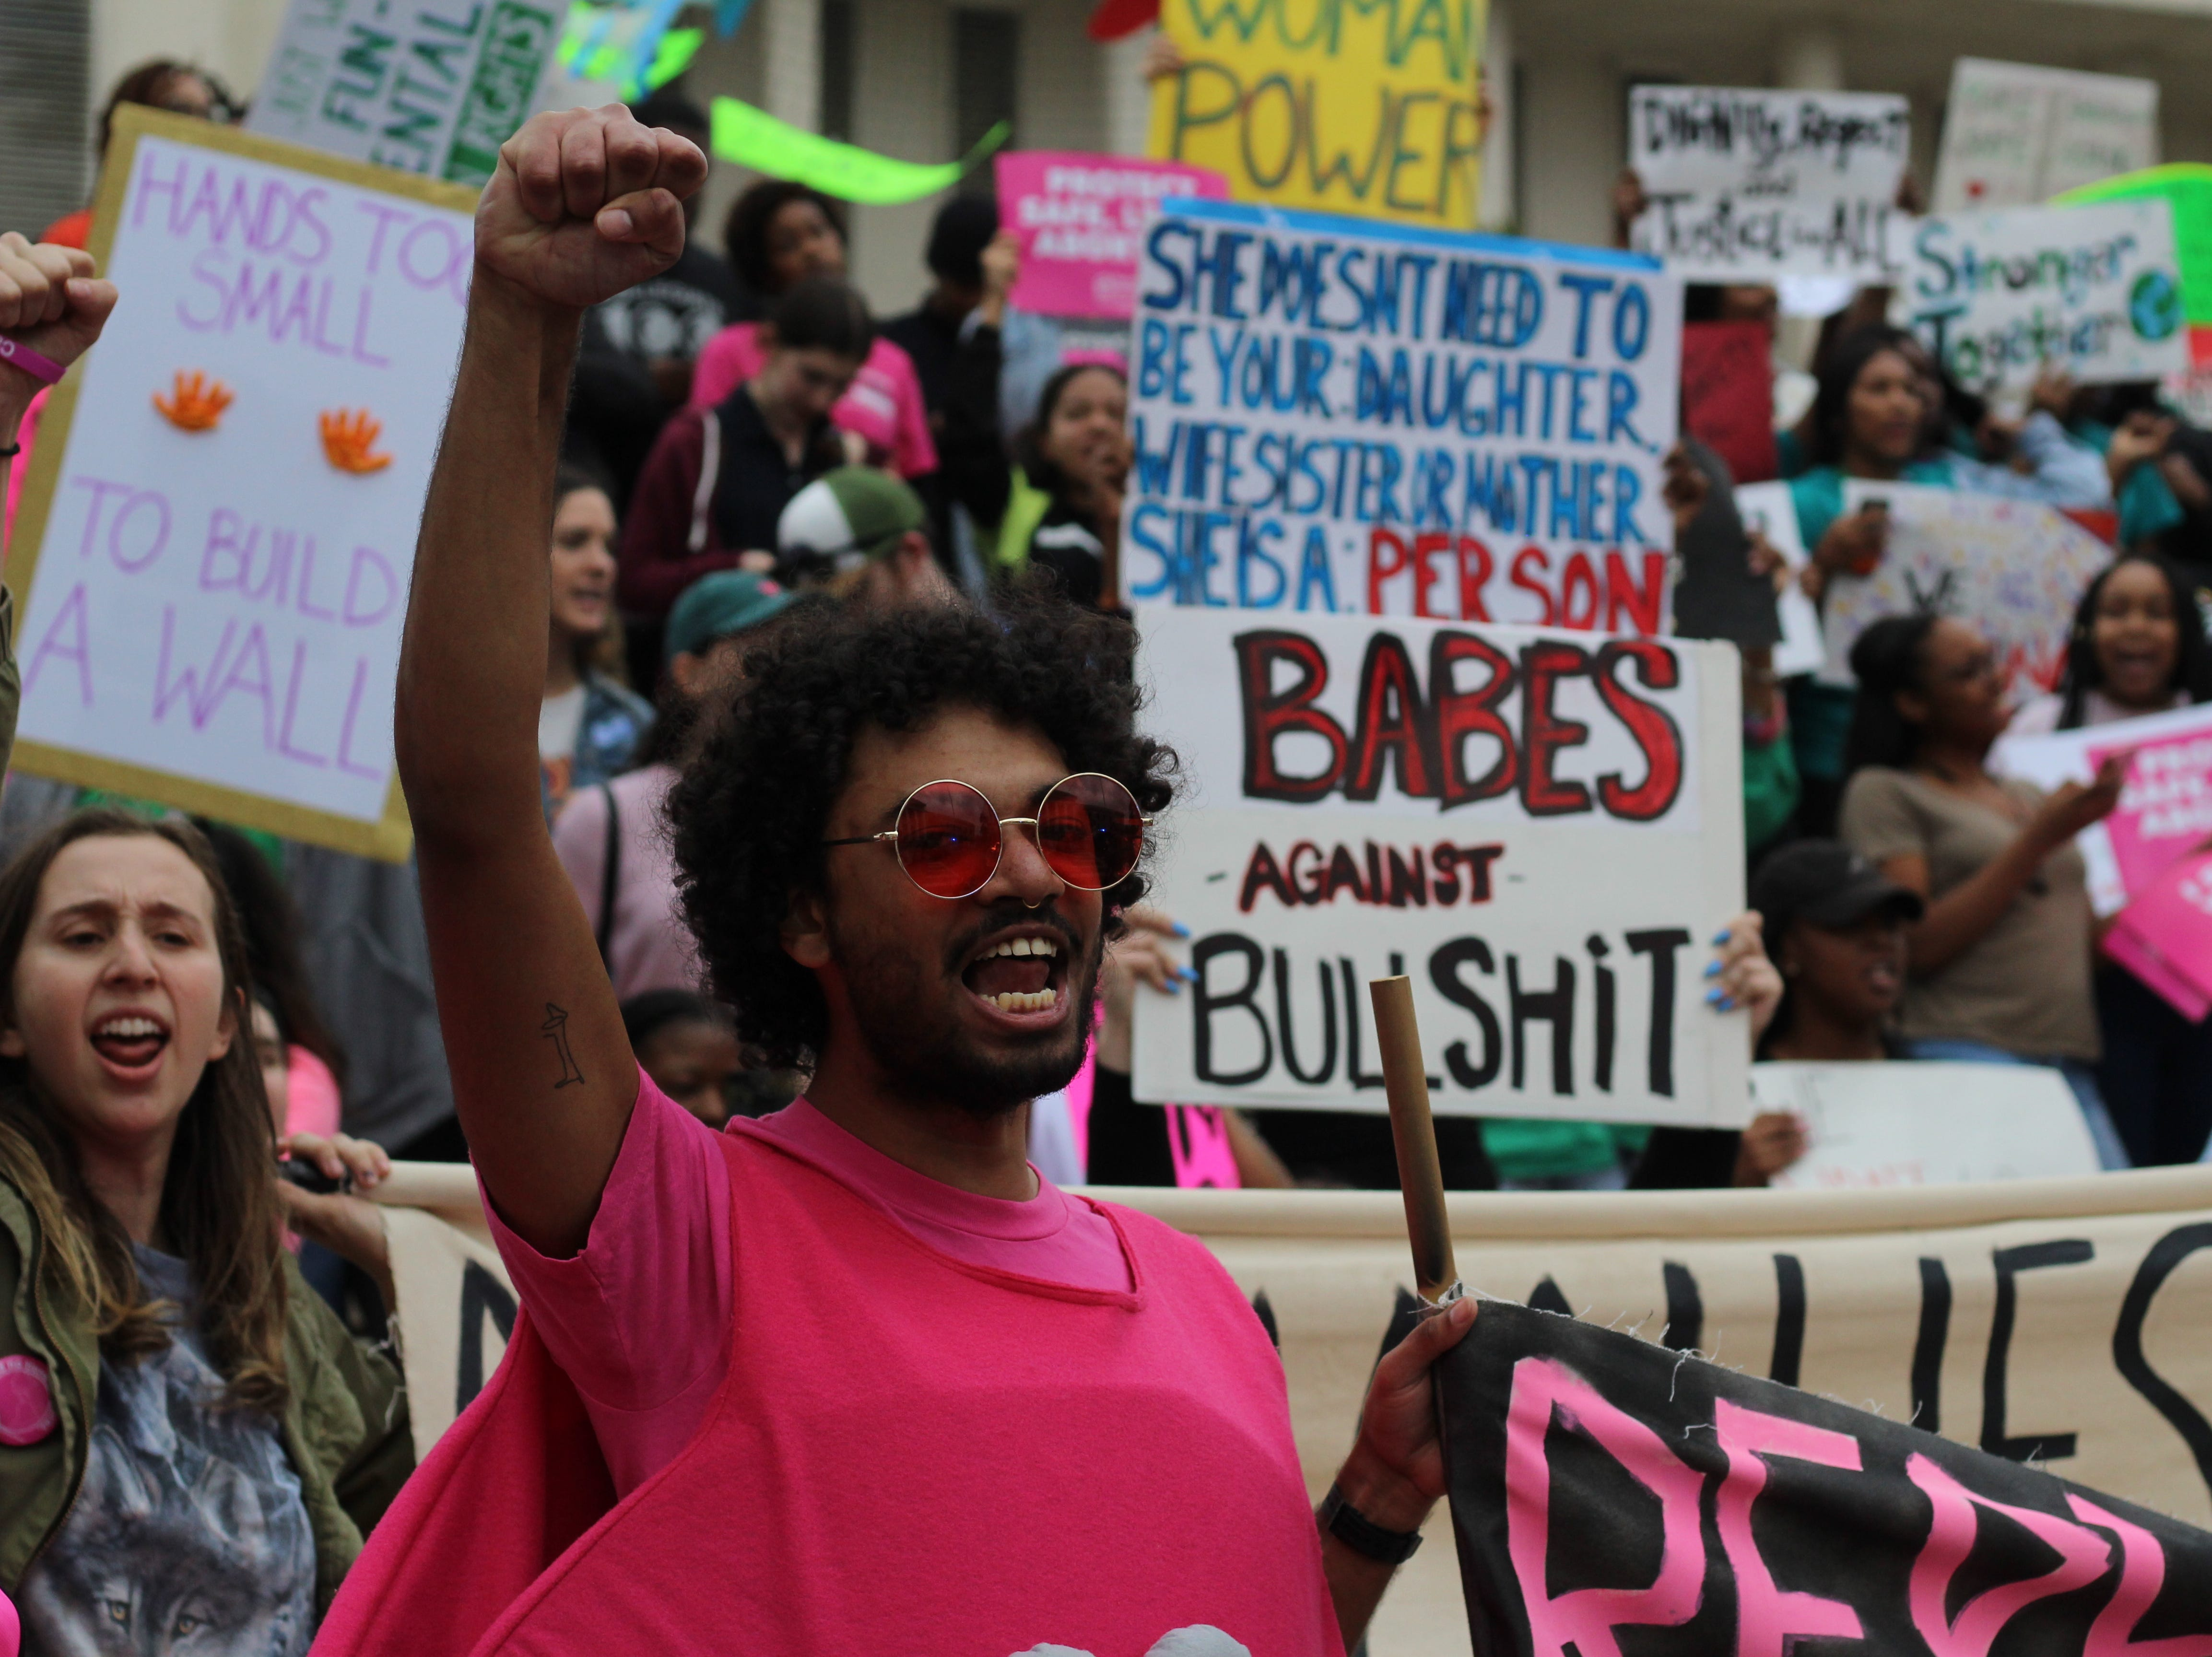 Community members gather for Tallahassee's Women's March on Jan. 19 to advocate for women's rights.